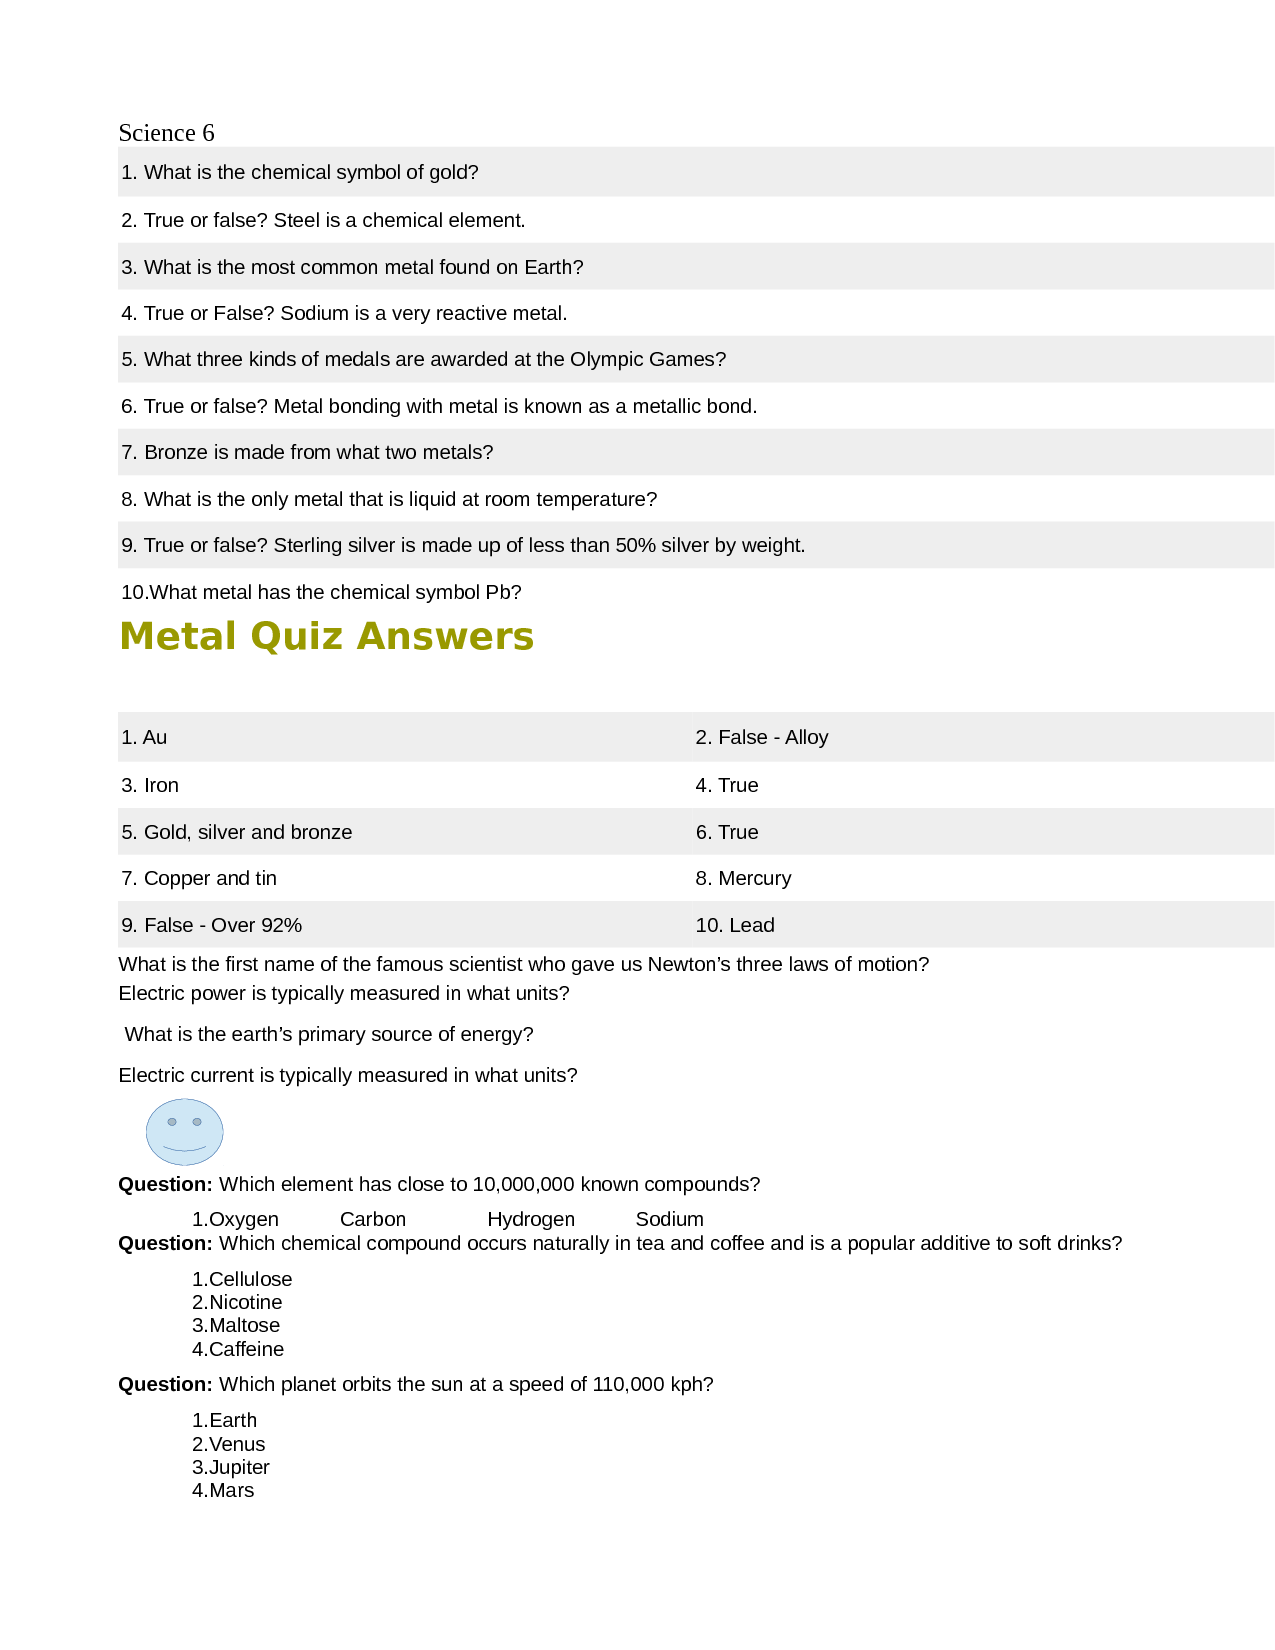 Solution Metal Quiz Answers Science Studypool